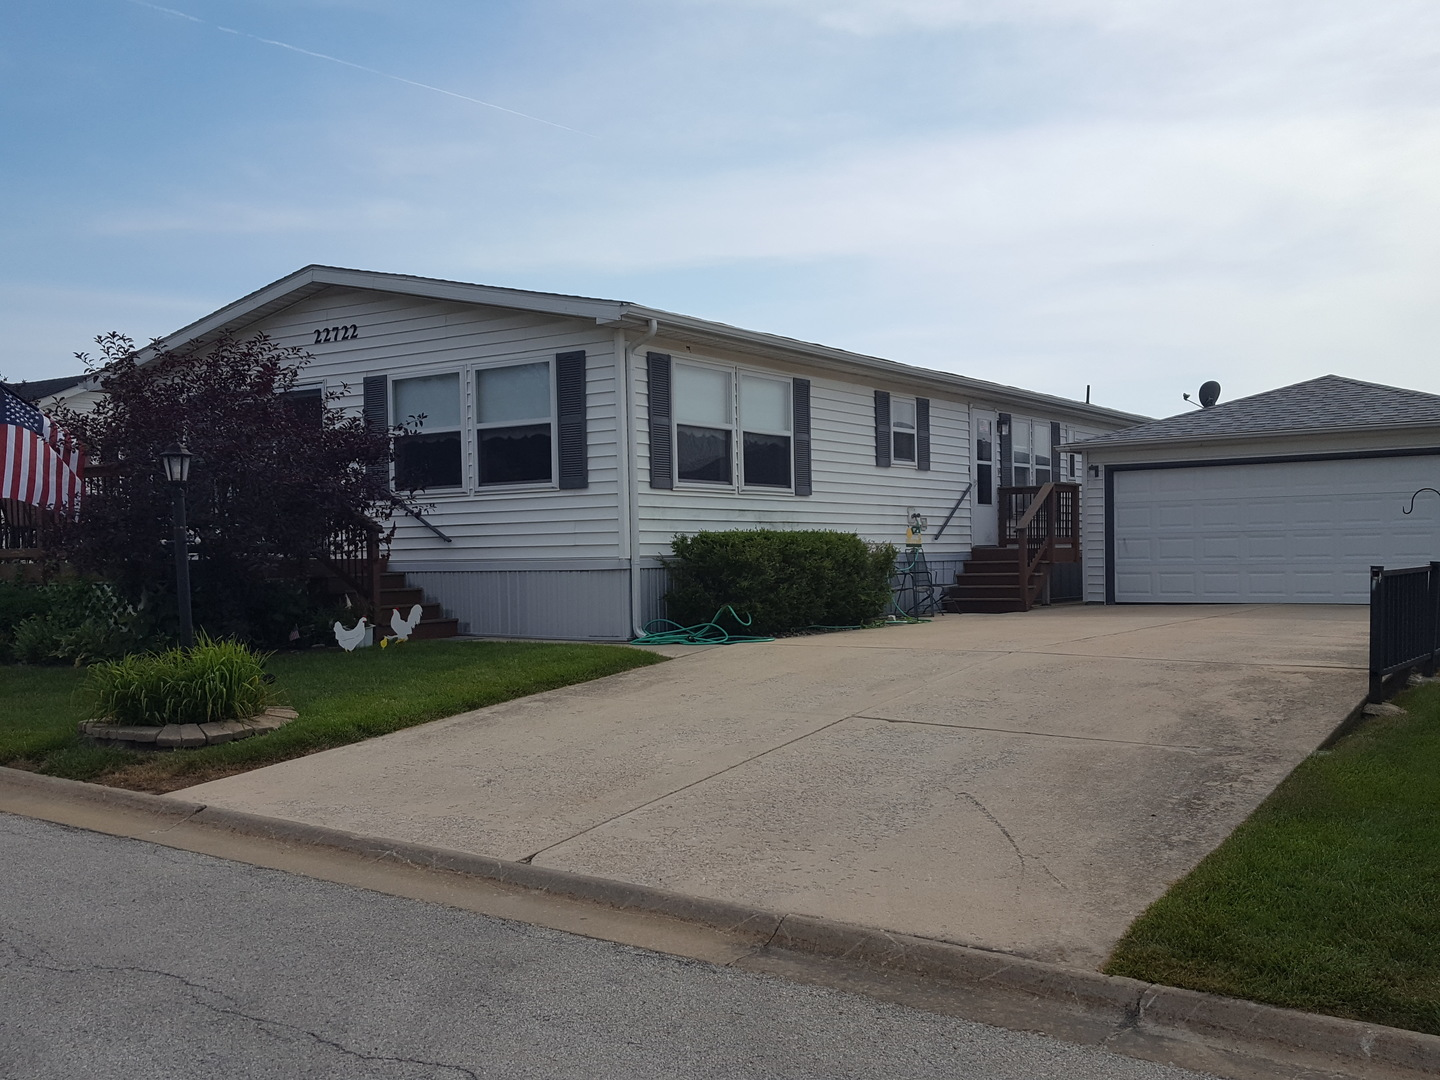 22722 South Foxfire, FRANKFORT, Illinois, 60423